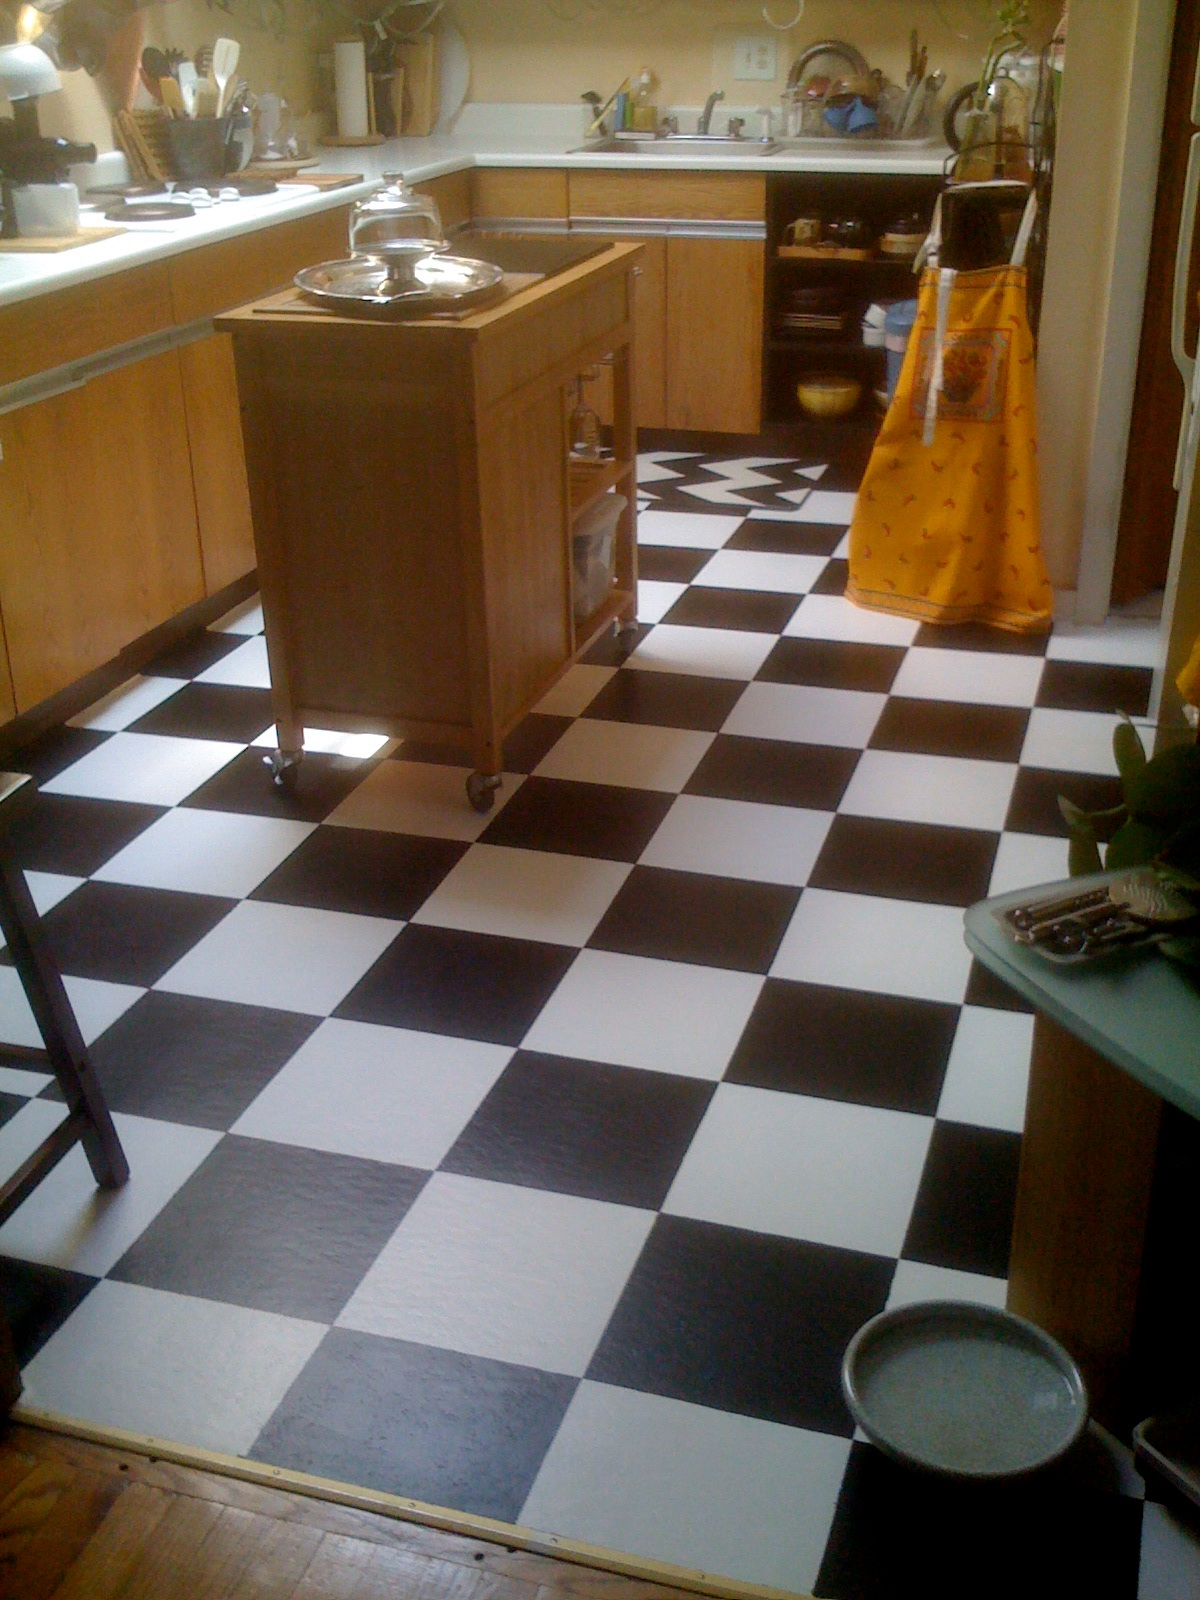 Paint for floor tiles in kitchen images home flooring design elegant can you paint over kitchen tiles taste diy hate those vinyl tiles paint over em doublecrazyfo Images